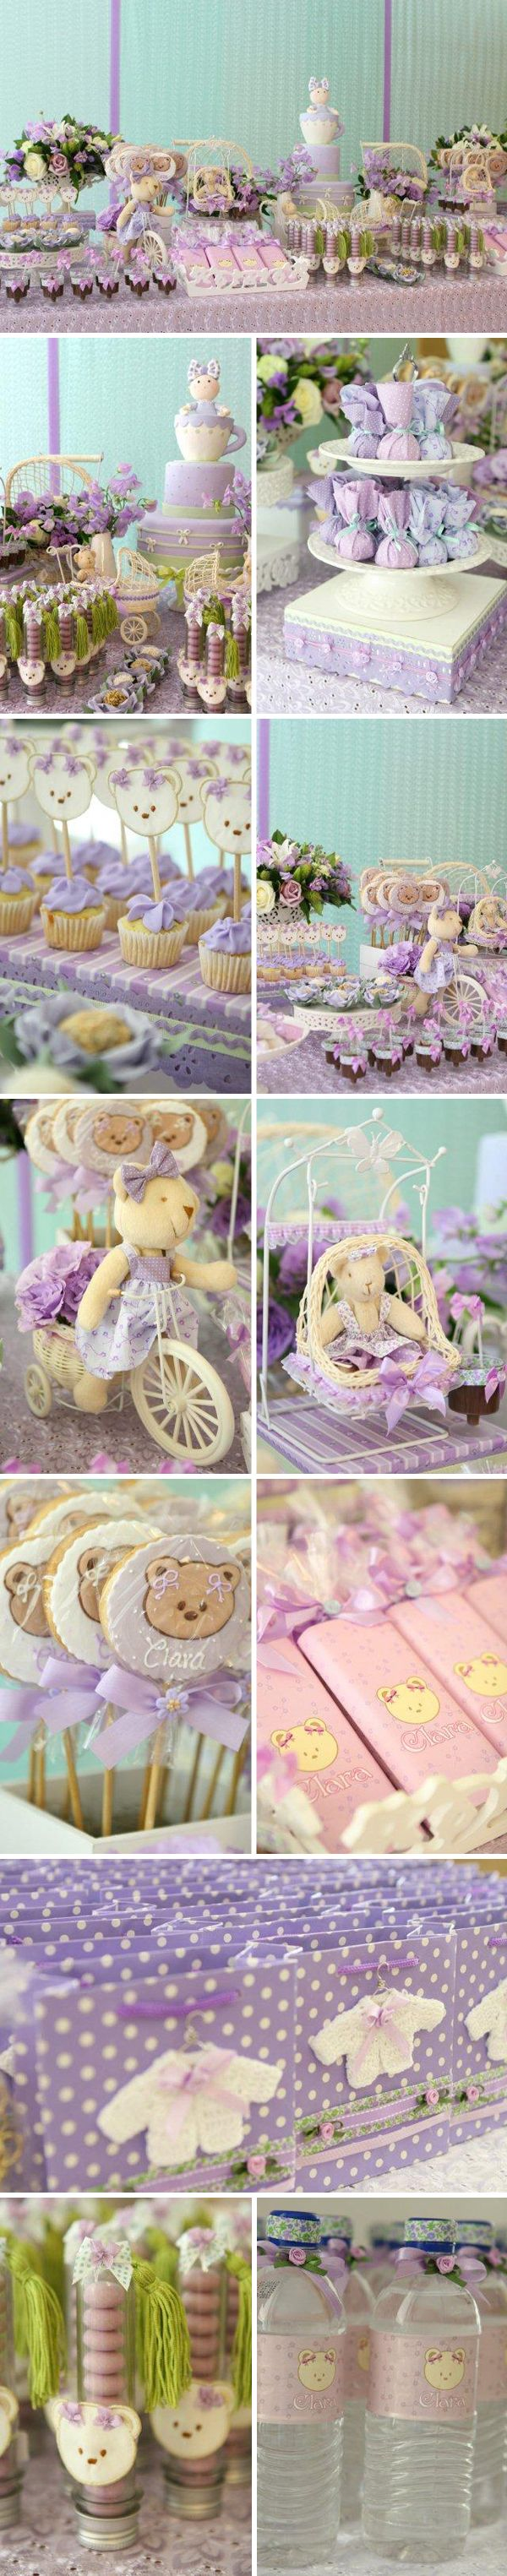 This is a baby shower for a little girl.  I just love the shades of lavender and green!